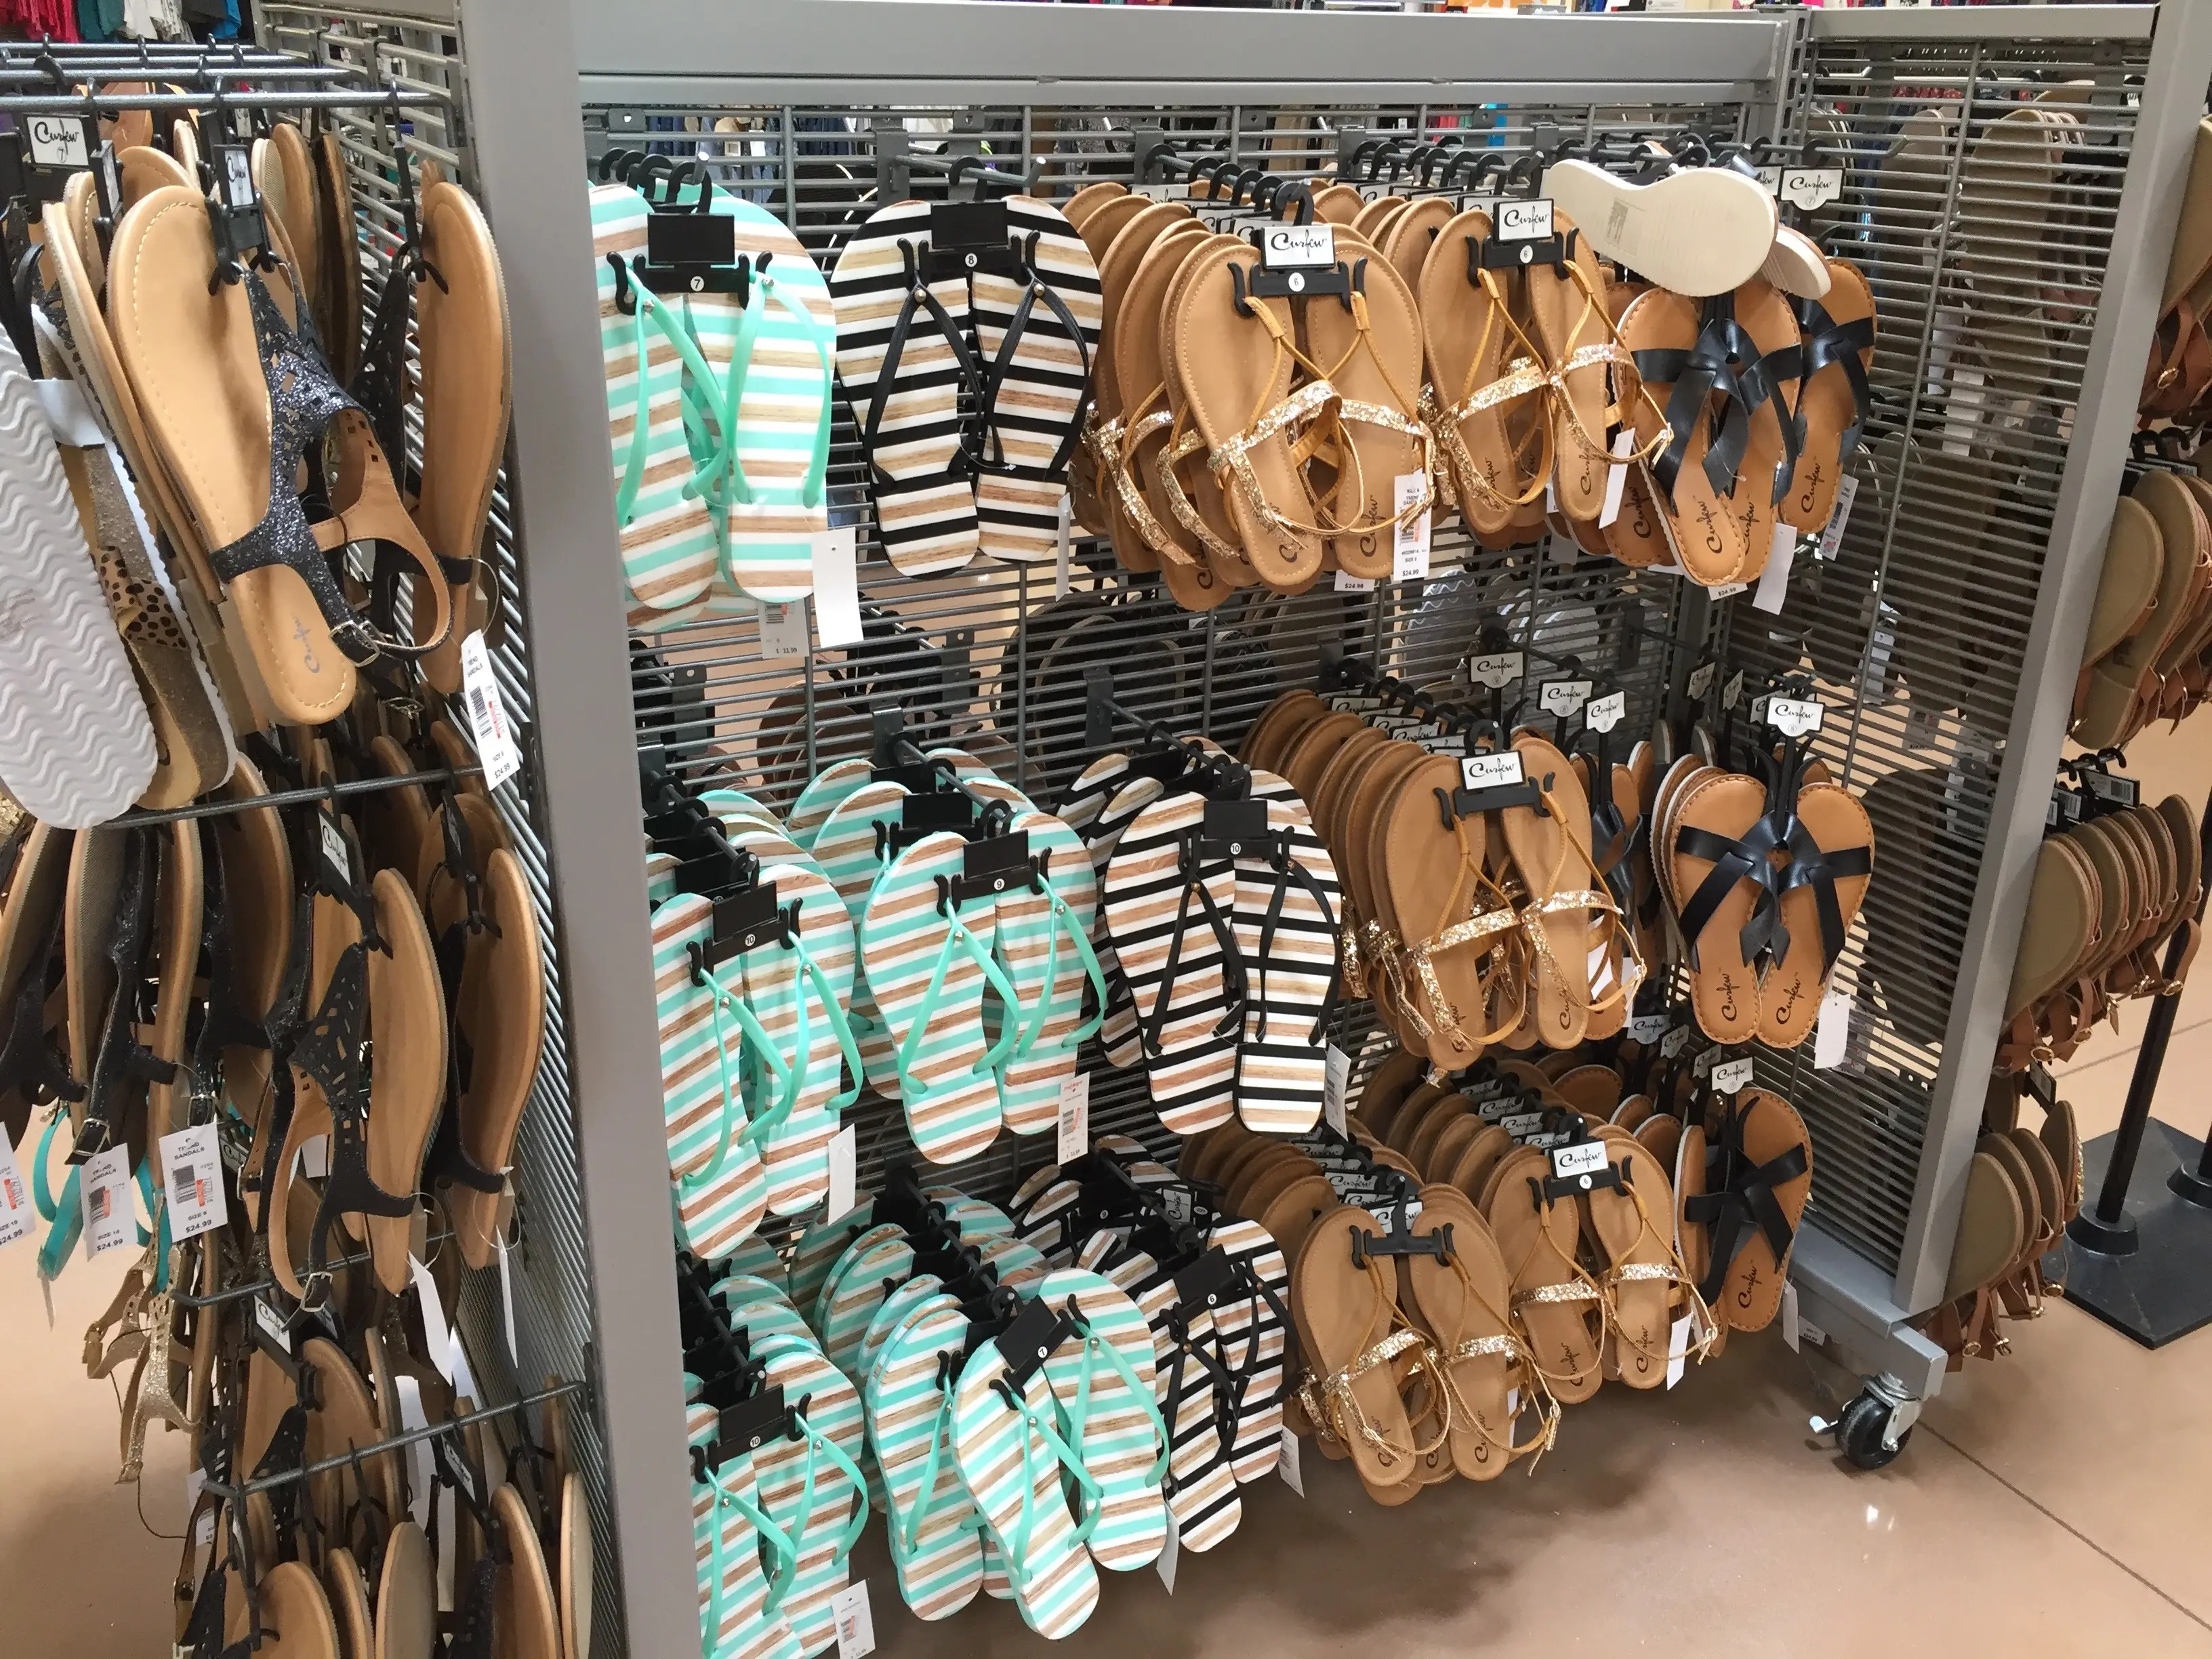 ... and a large selection of sneakers, heeled shoes, and flip-flops.